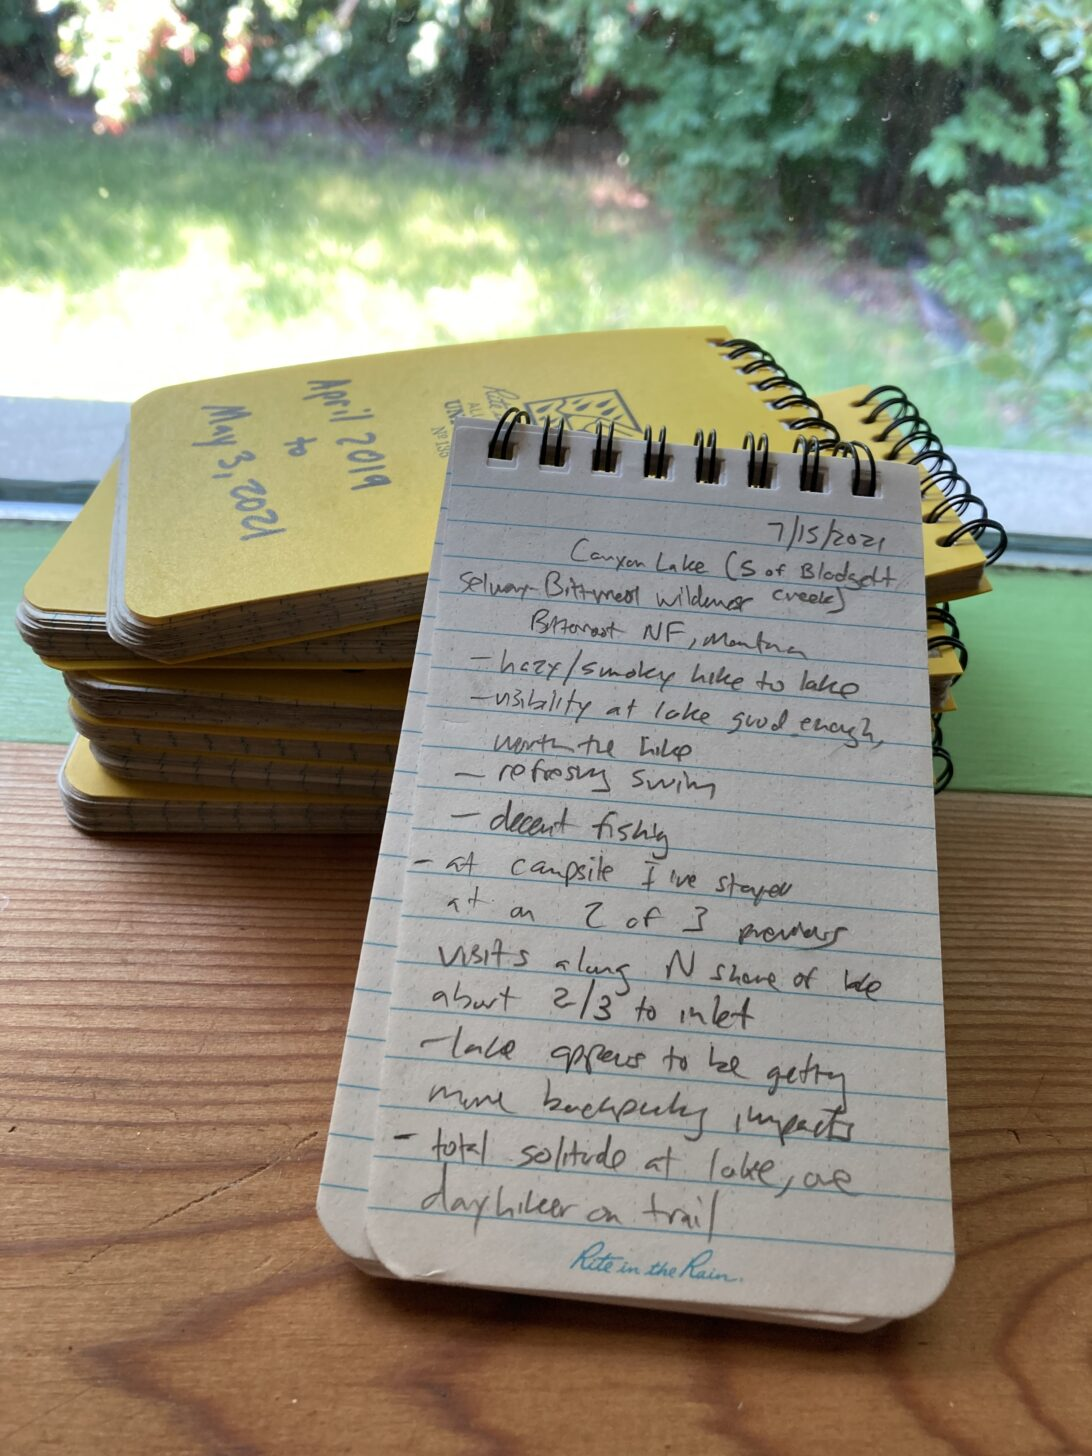 A decade of trips are accounted for in these small notebooks. I look forward to looking back on the most recent entry in a few years.